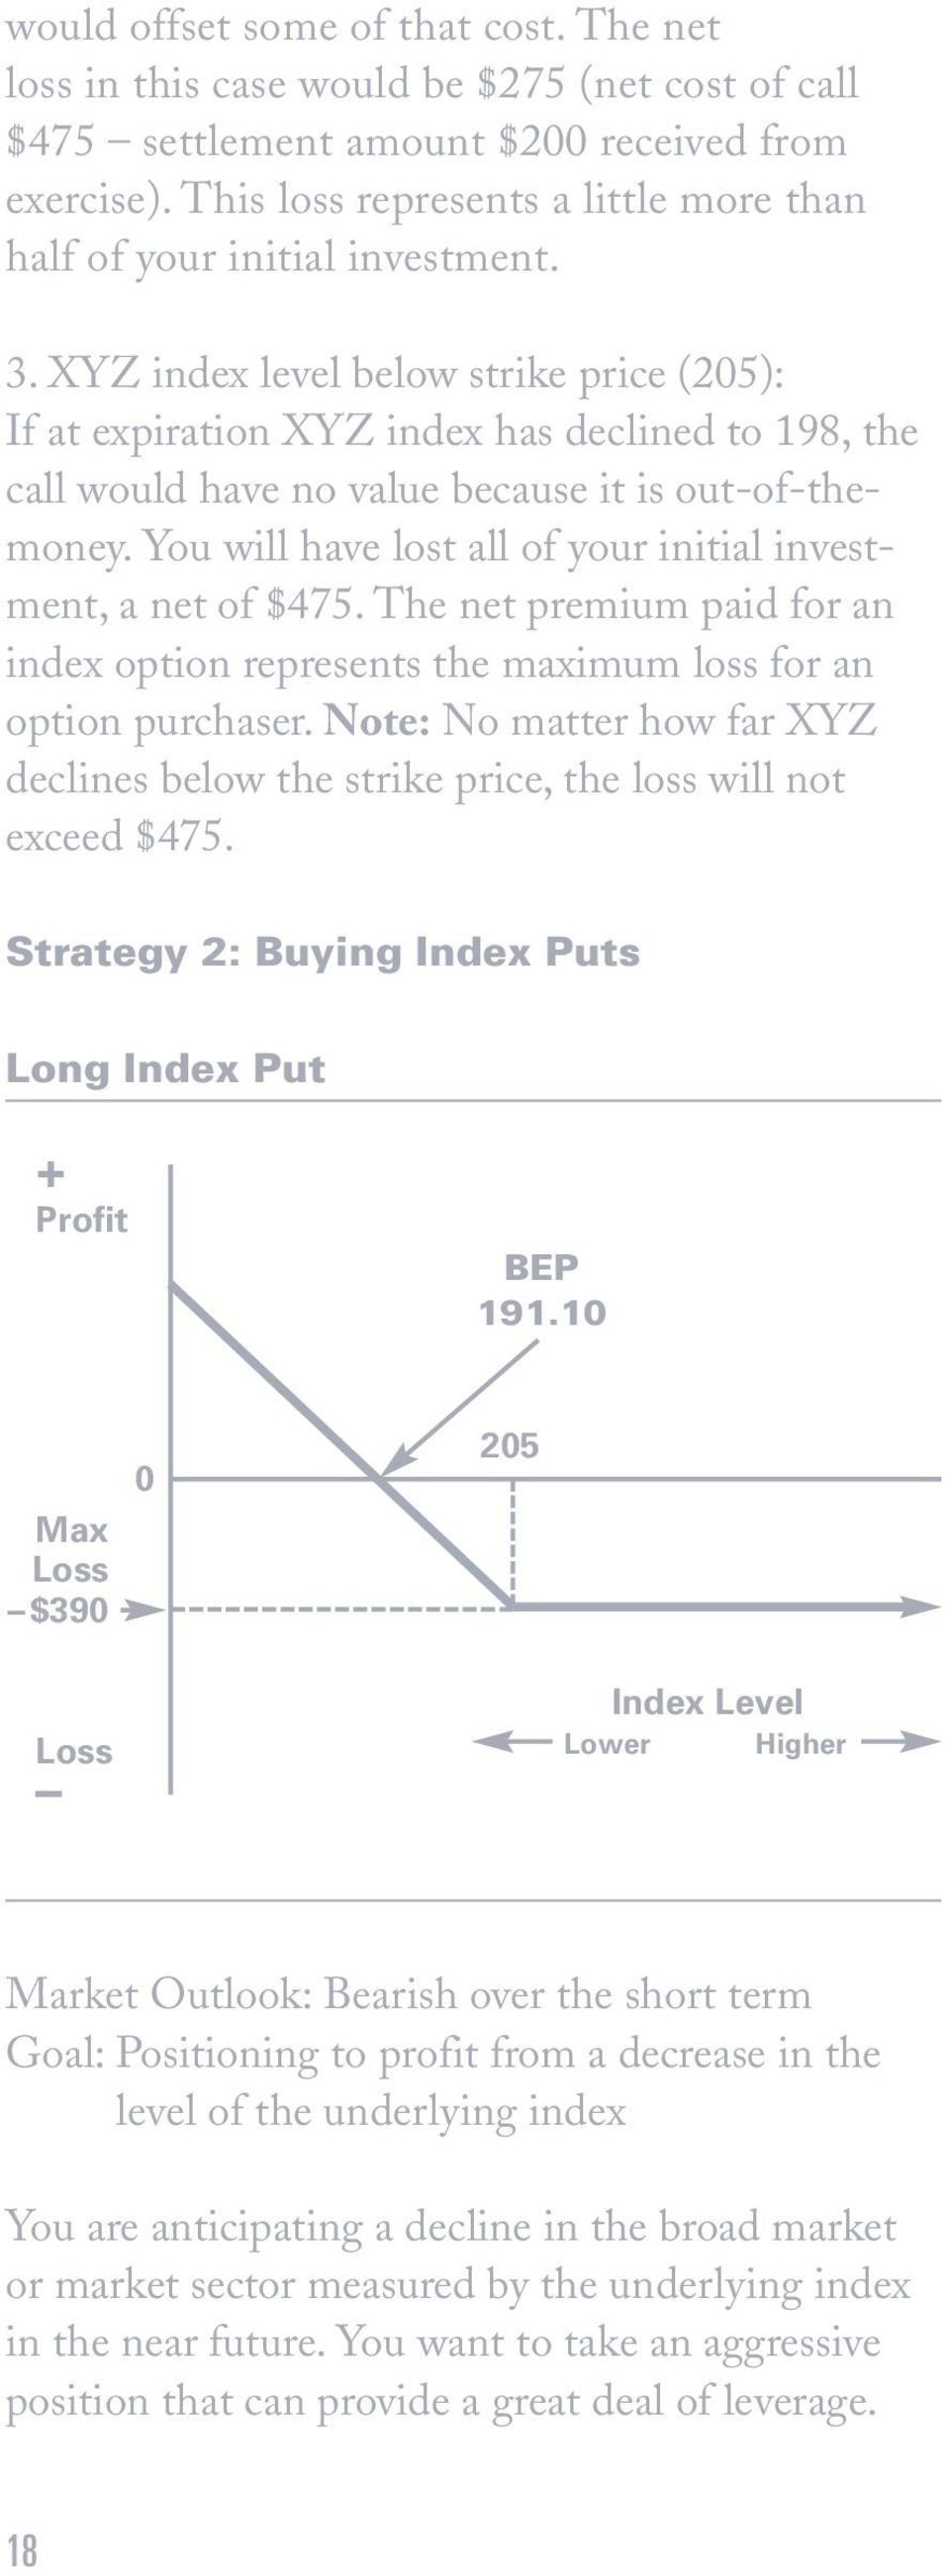 XYZ index level below strike price (205): If at expiration XYZ index has declined to 198, the call would have no value because it is out-of-themoney.